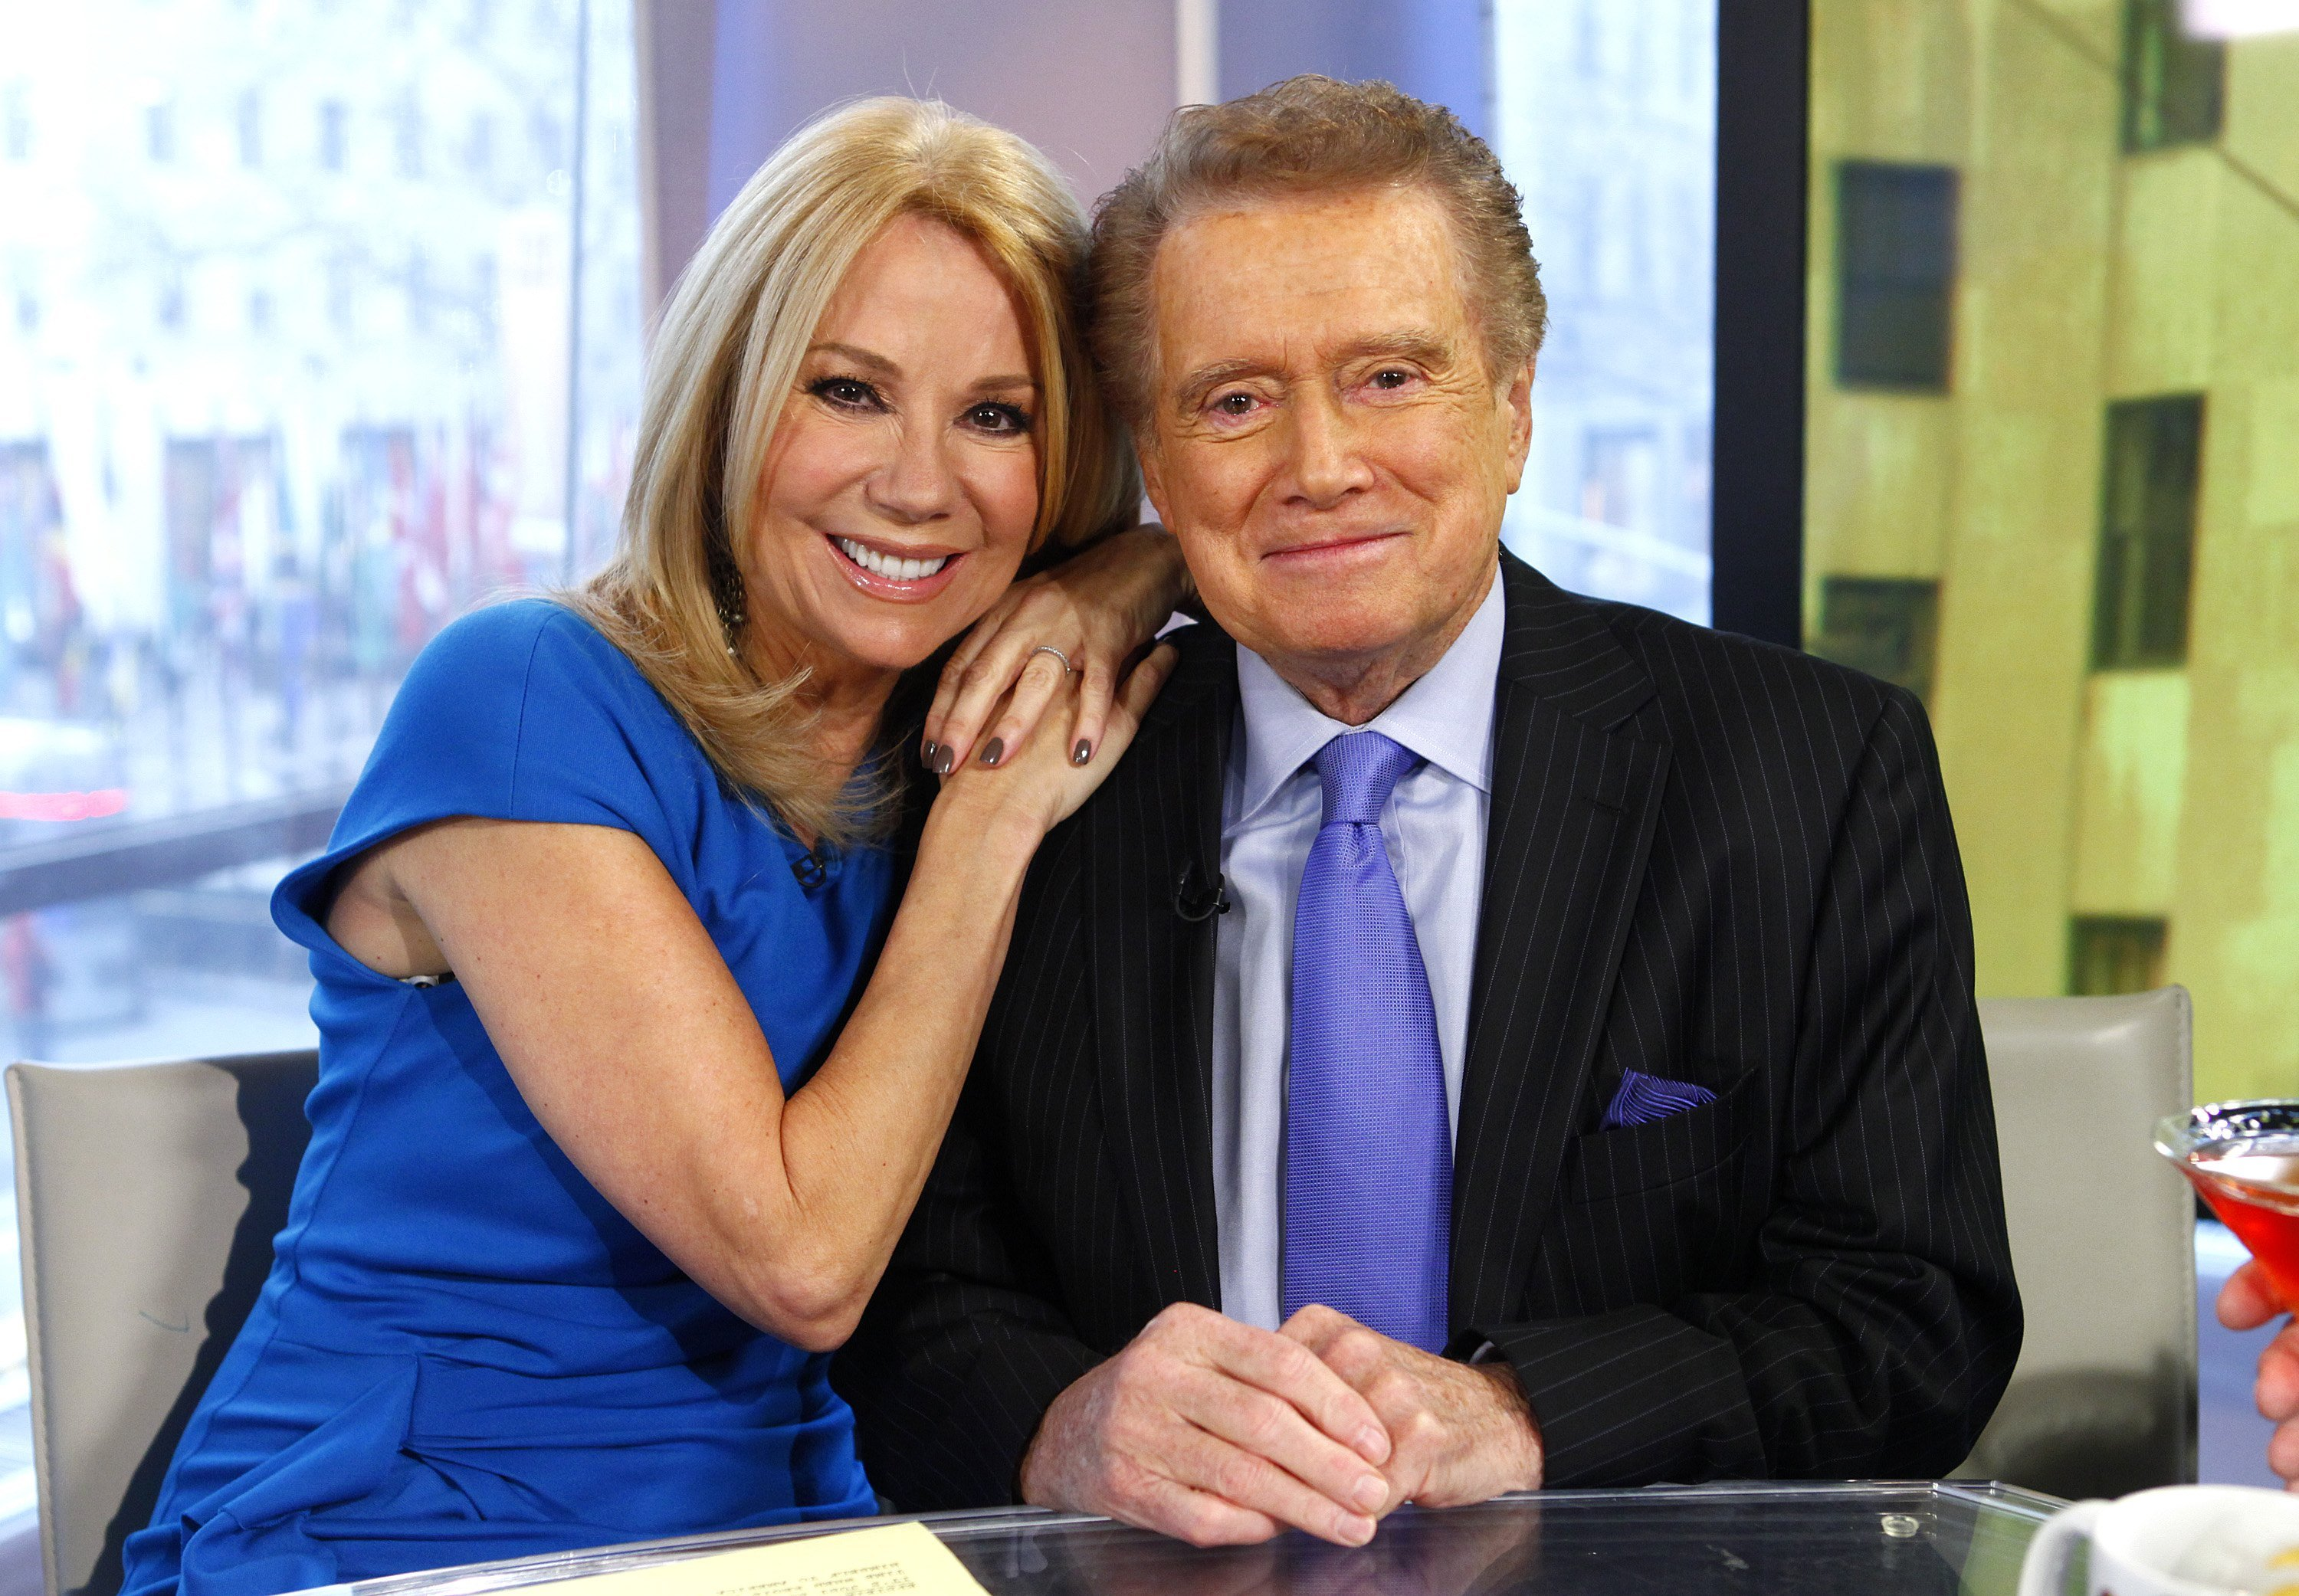 Image Credits: Getty Images / Peter Kramer/NBC/NBC NewsWire | Kathie Lee Gifford and Regis Philbin